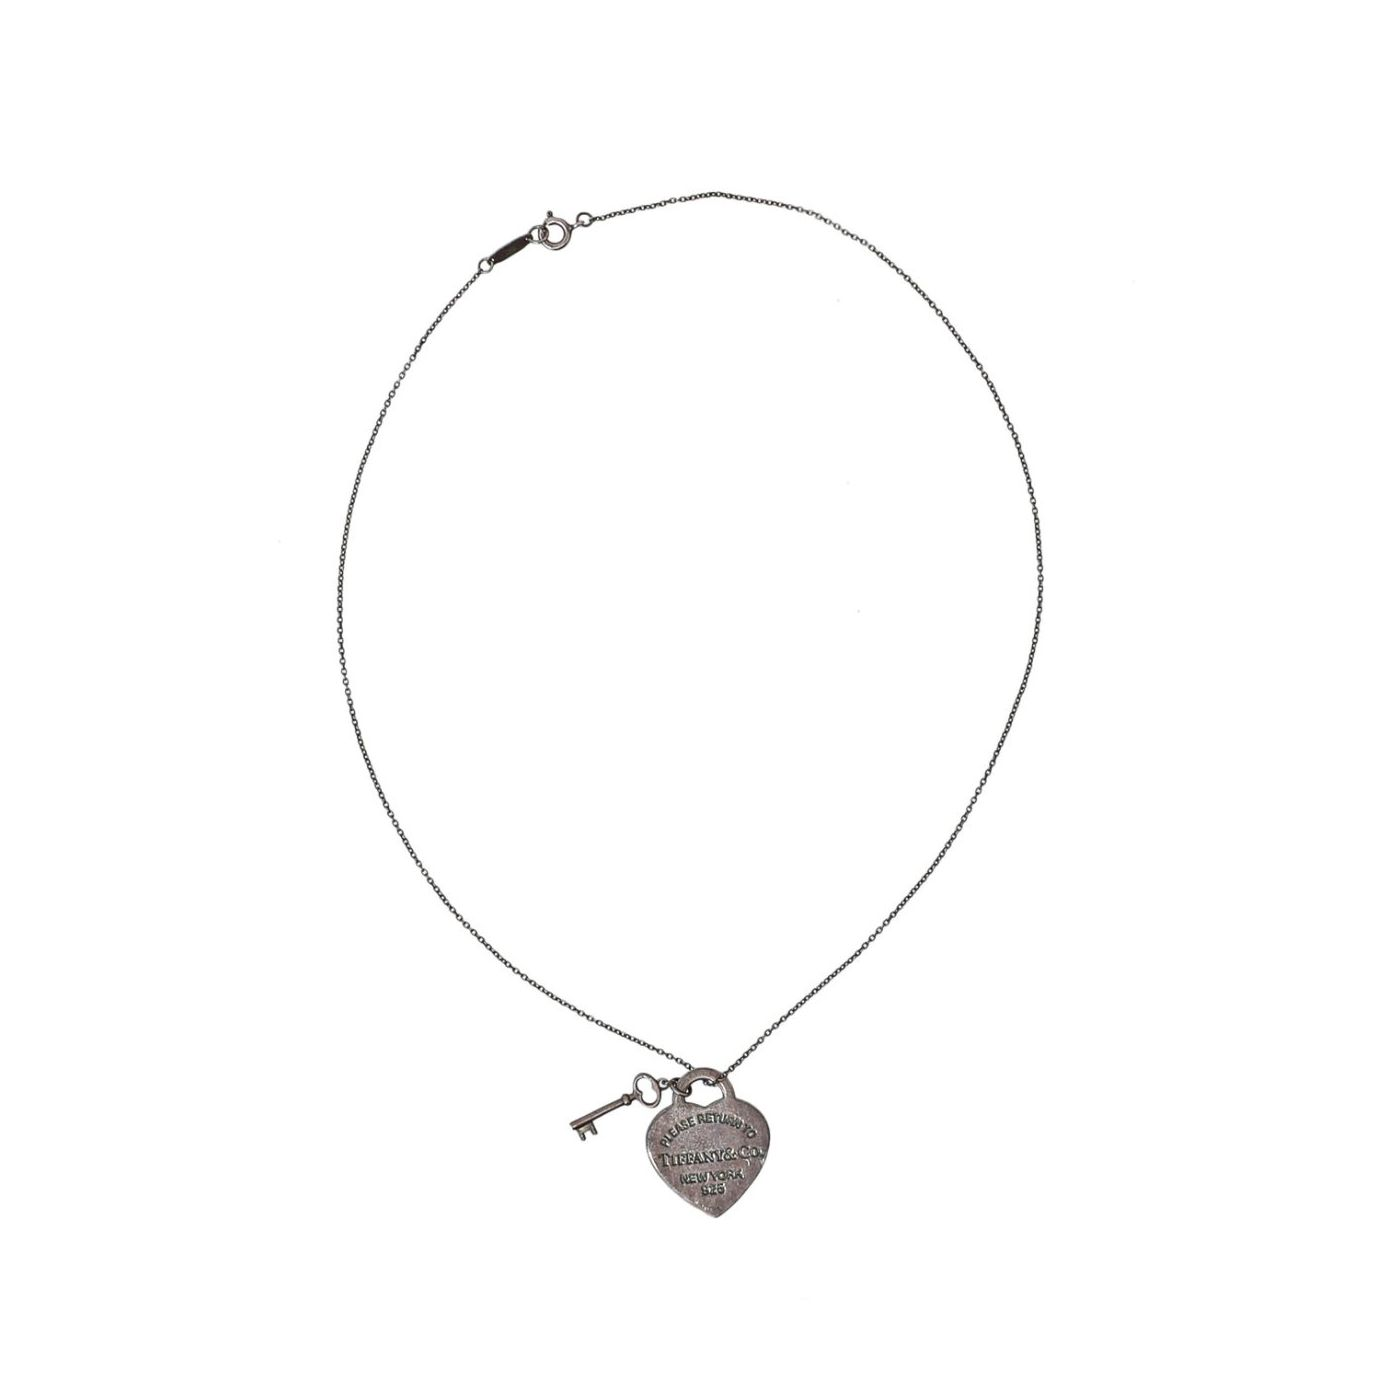 Tiffany & Co. Heart & Key Pendant Necklace